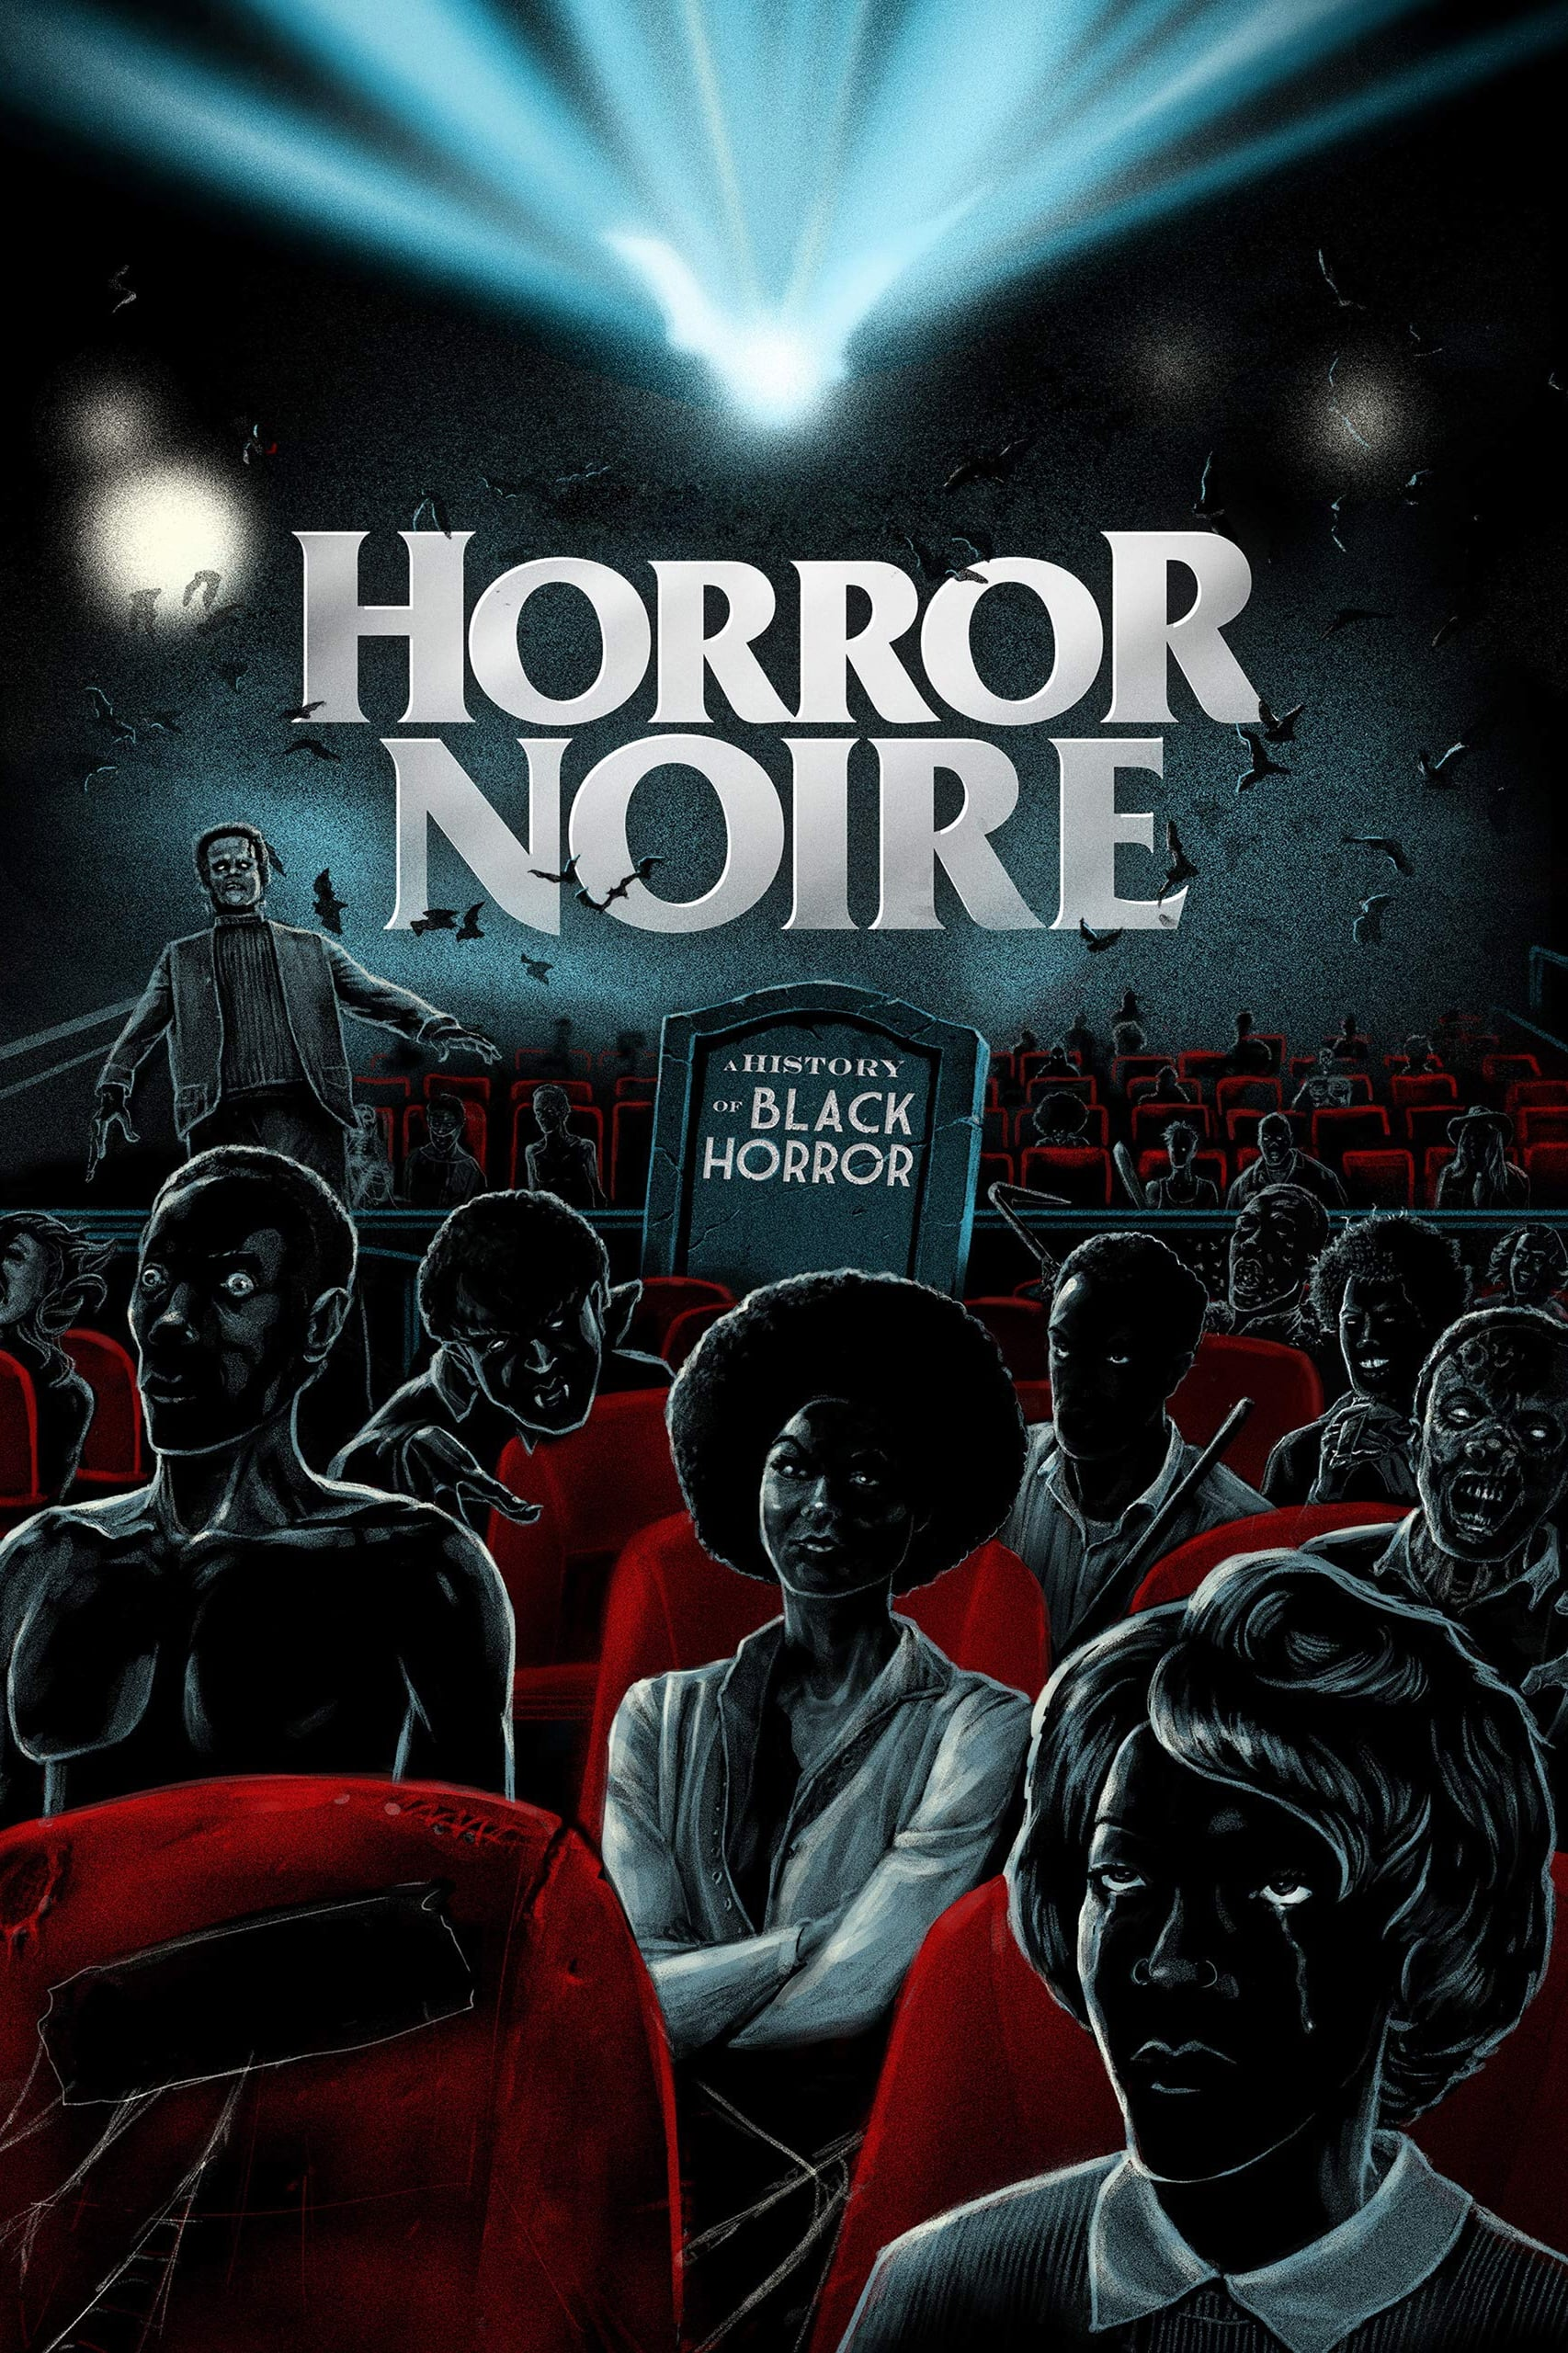 Poster for HORROR NOIRE: A HISTORY OF BLACK HORROR presented by BRITT SANKOFA